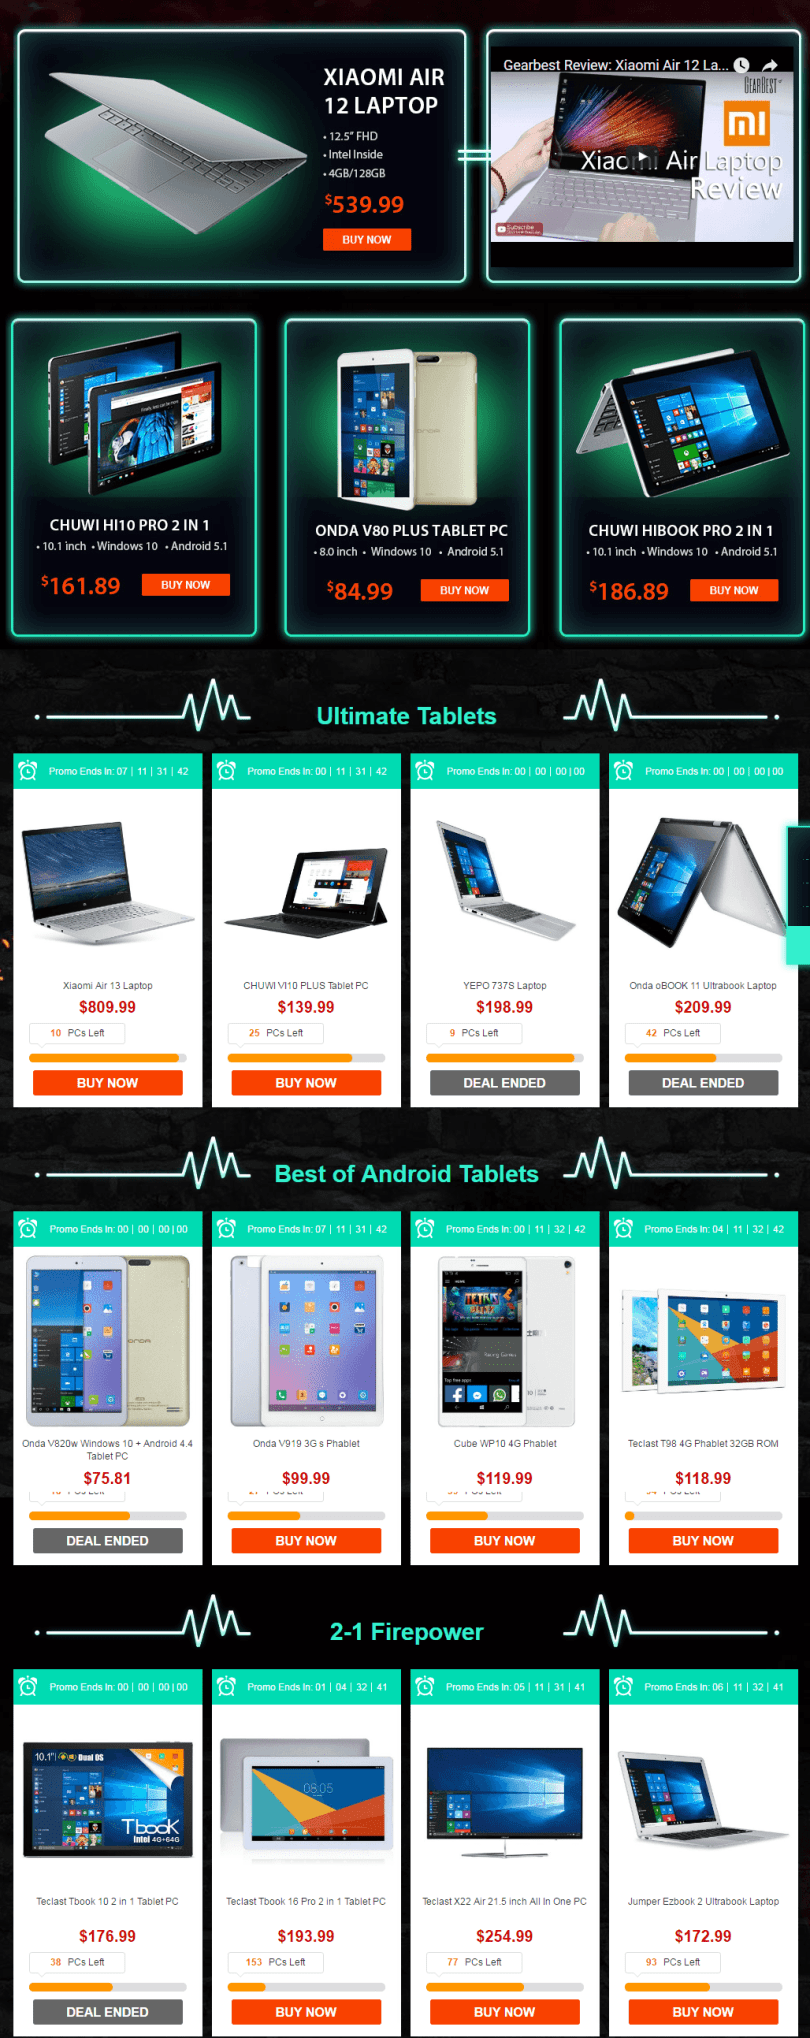 all-products-ultimate-tablets-reloaded-promotional-sale-1